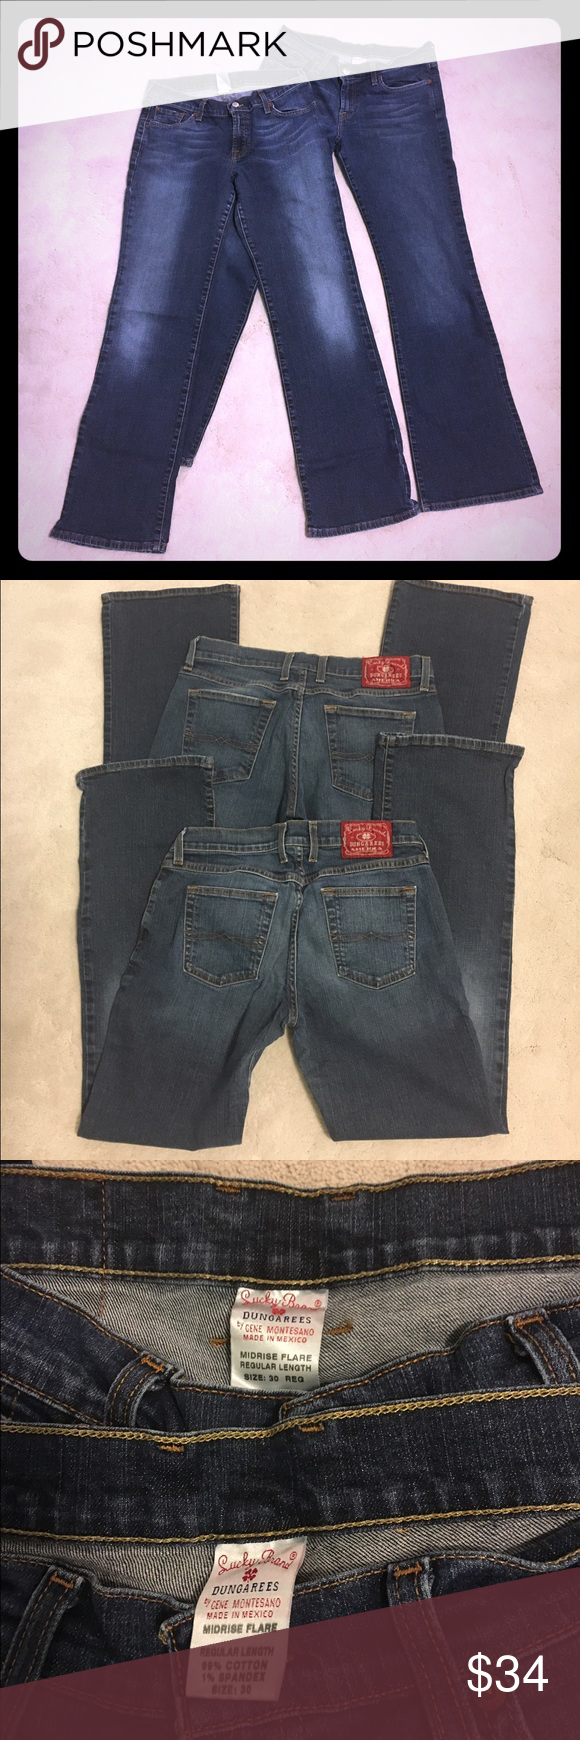 "2 pairs of Lucky Brand Jeans size 30 reg. length Mid rise Flare but more of a bootcut fit. The zipper on one pair works but if you overextend it, the zipper comes out but can be easily put back in place. Let me know if that is a problem and would only like the ""good"" pair. The hem is naturally worn and was purchased this way. Lucky Brand Jeans"